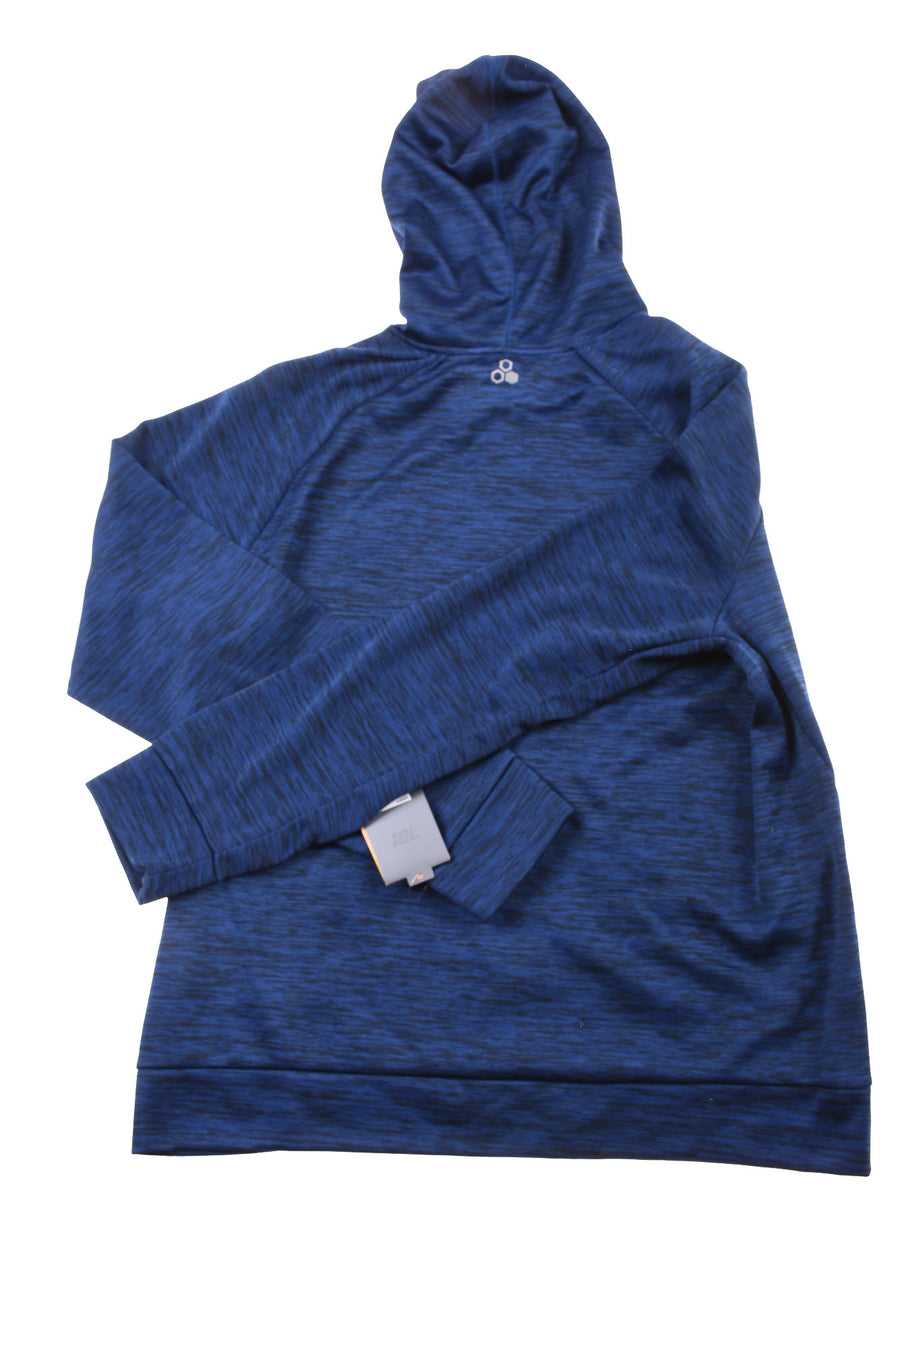 NEW Tek Gear Men's Sweatshirt X-Large Blue & Black